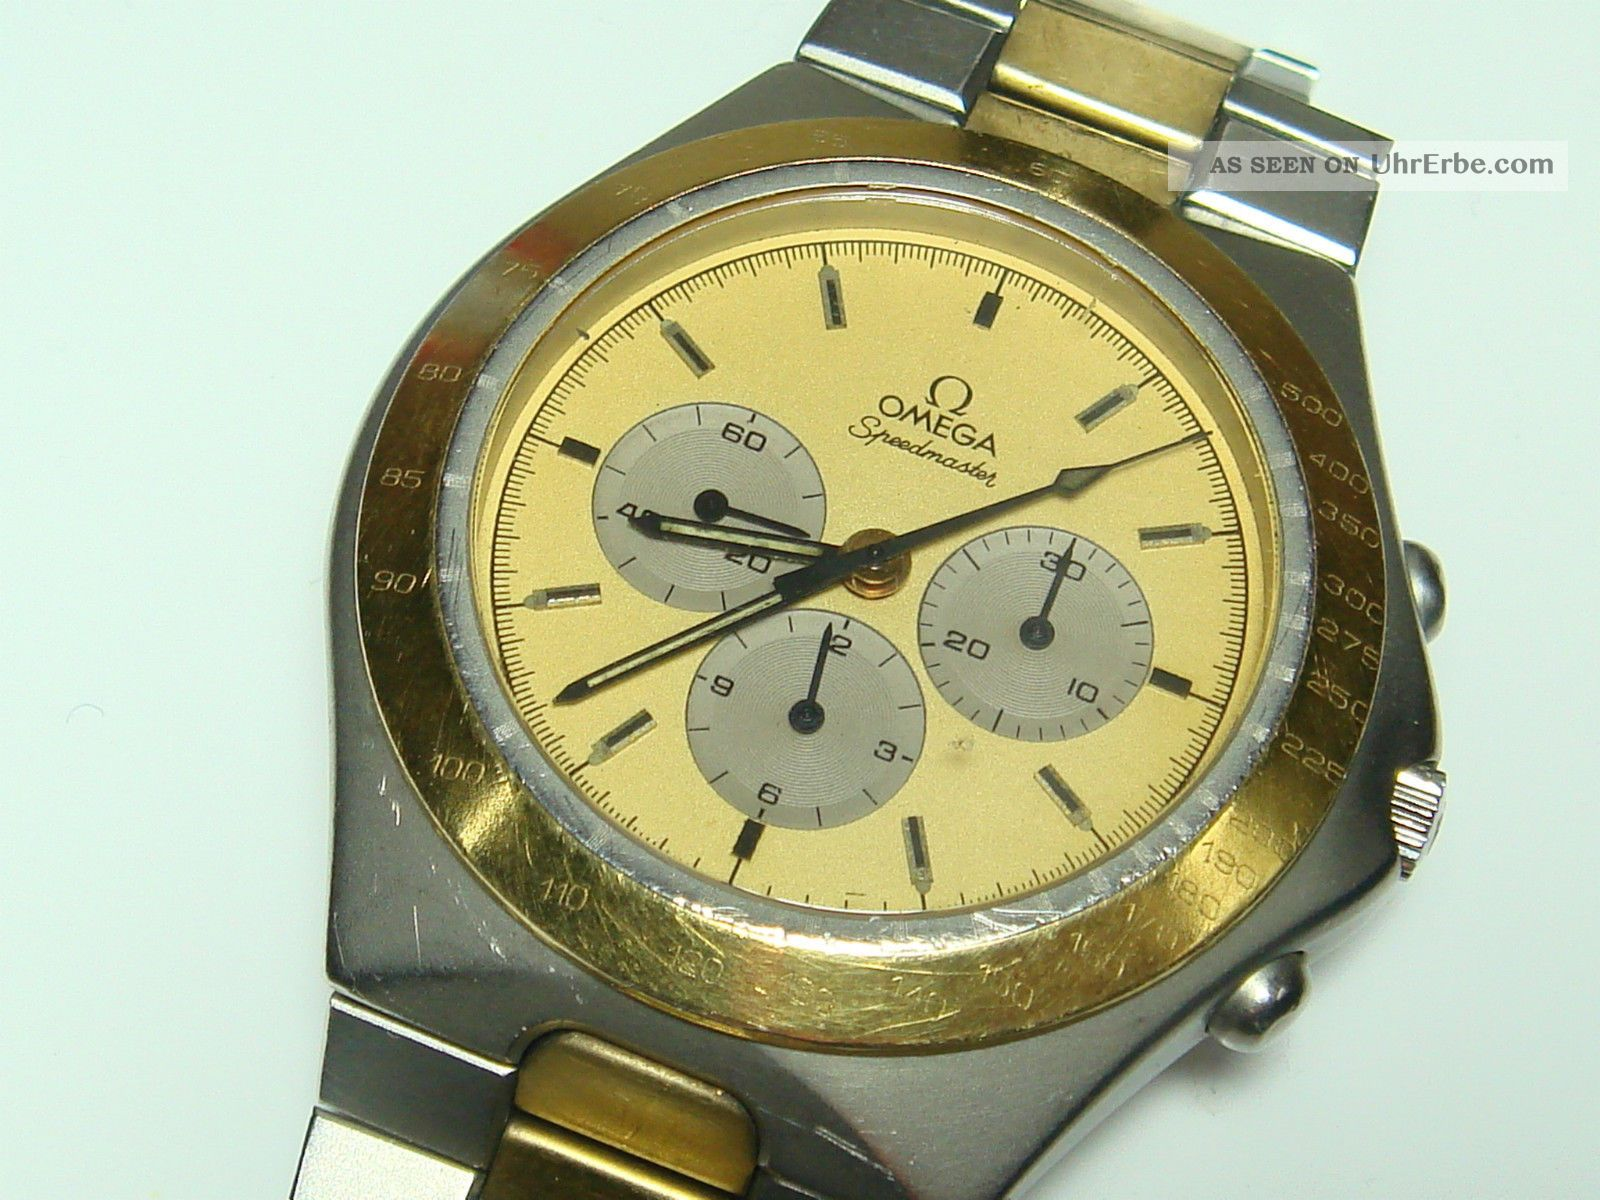 omega speedmaster stahl gold chronograph herren uhr handaufzug cal 861. Black Bedroom Furniture Sets. Home Design Ideas